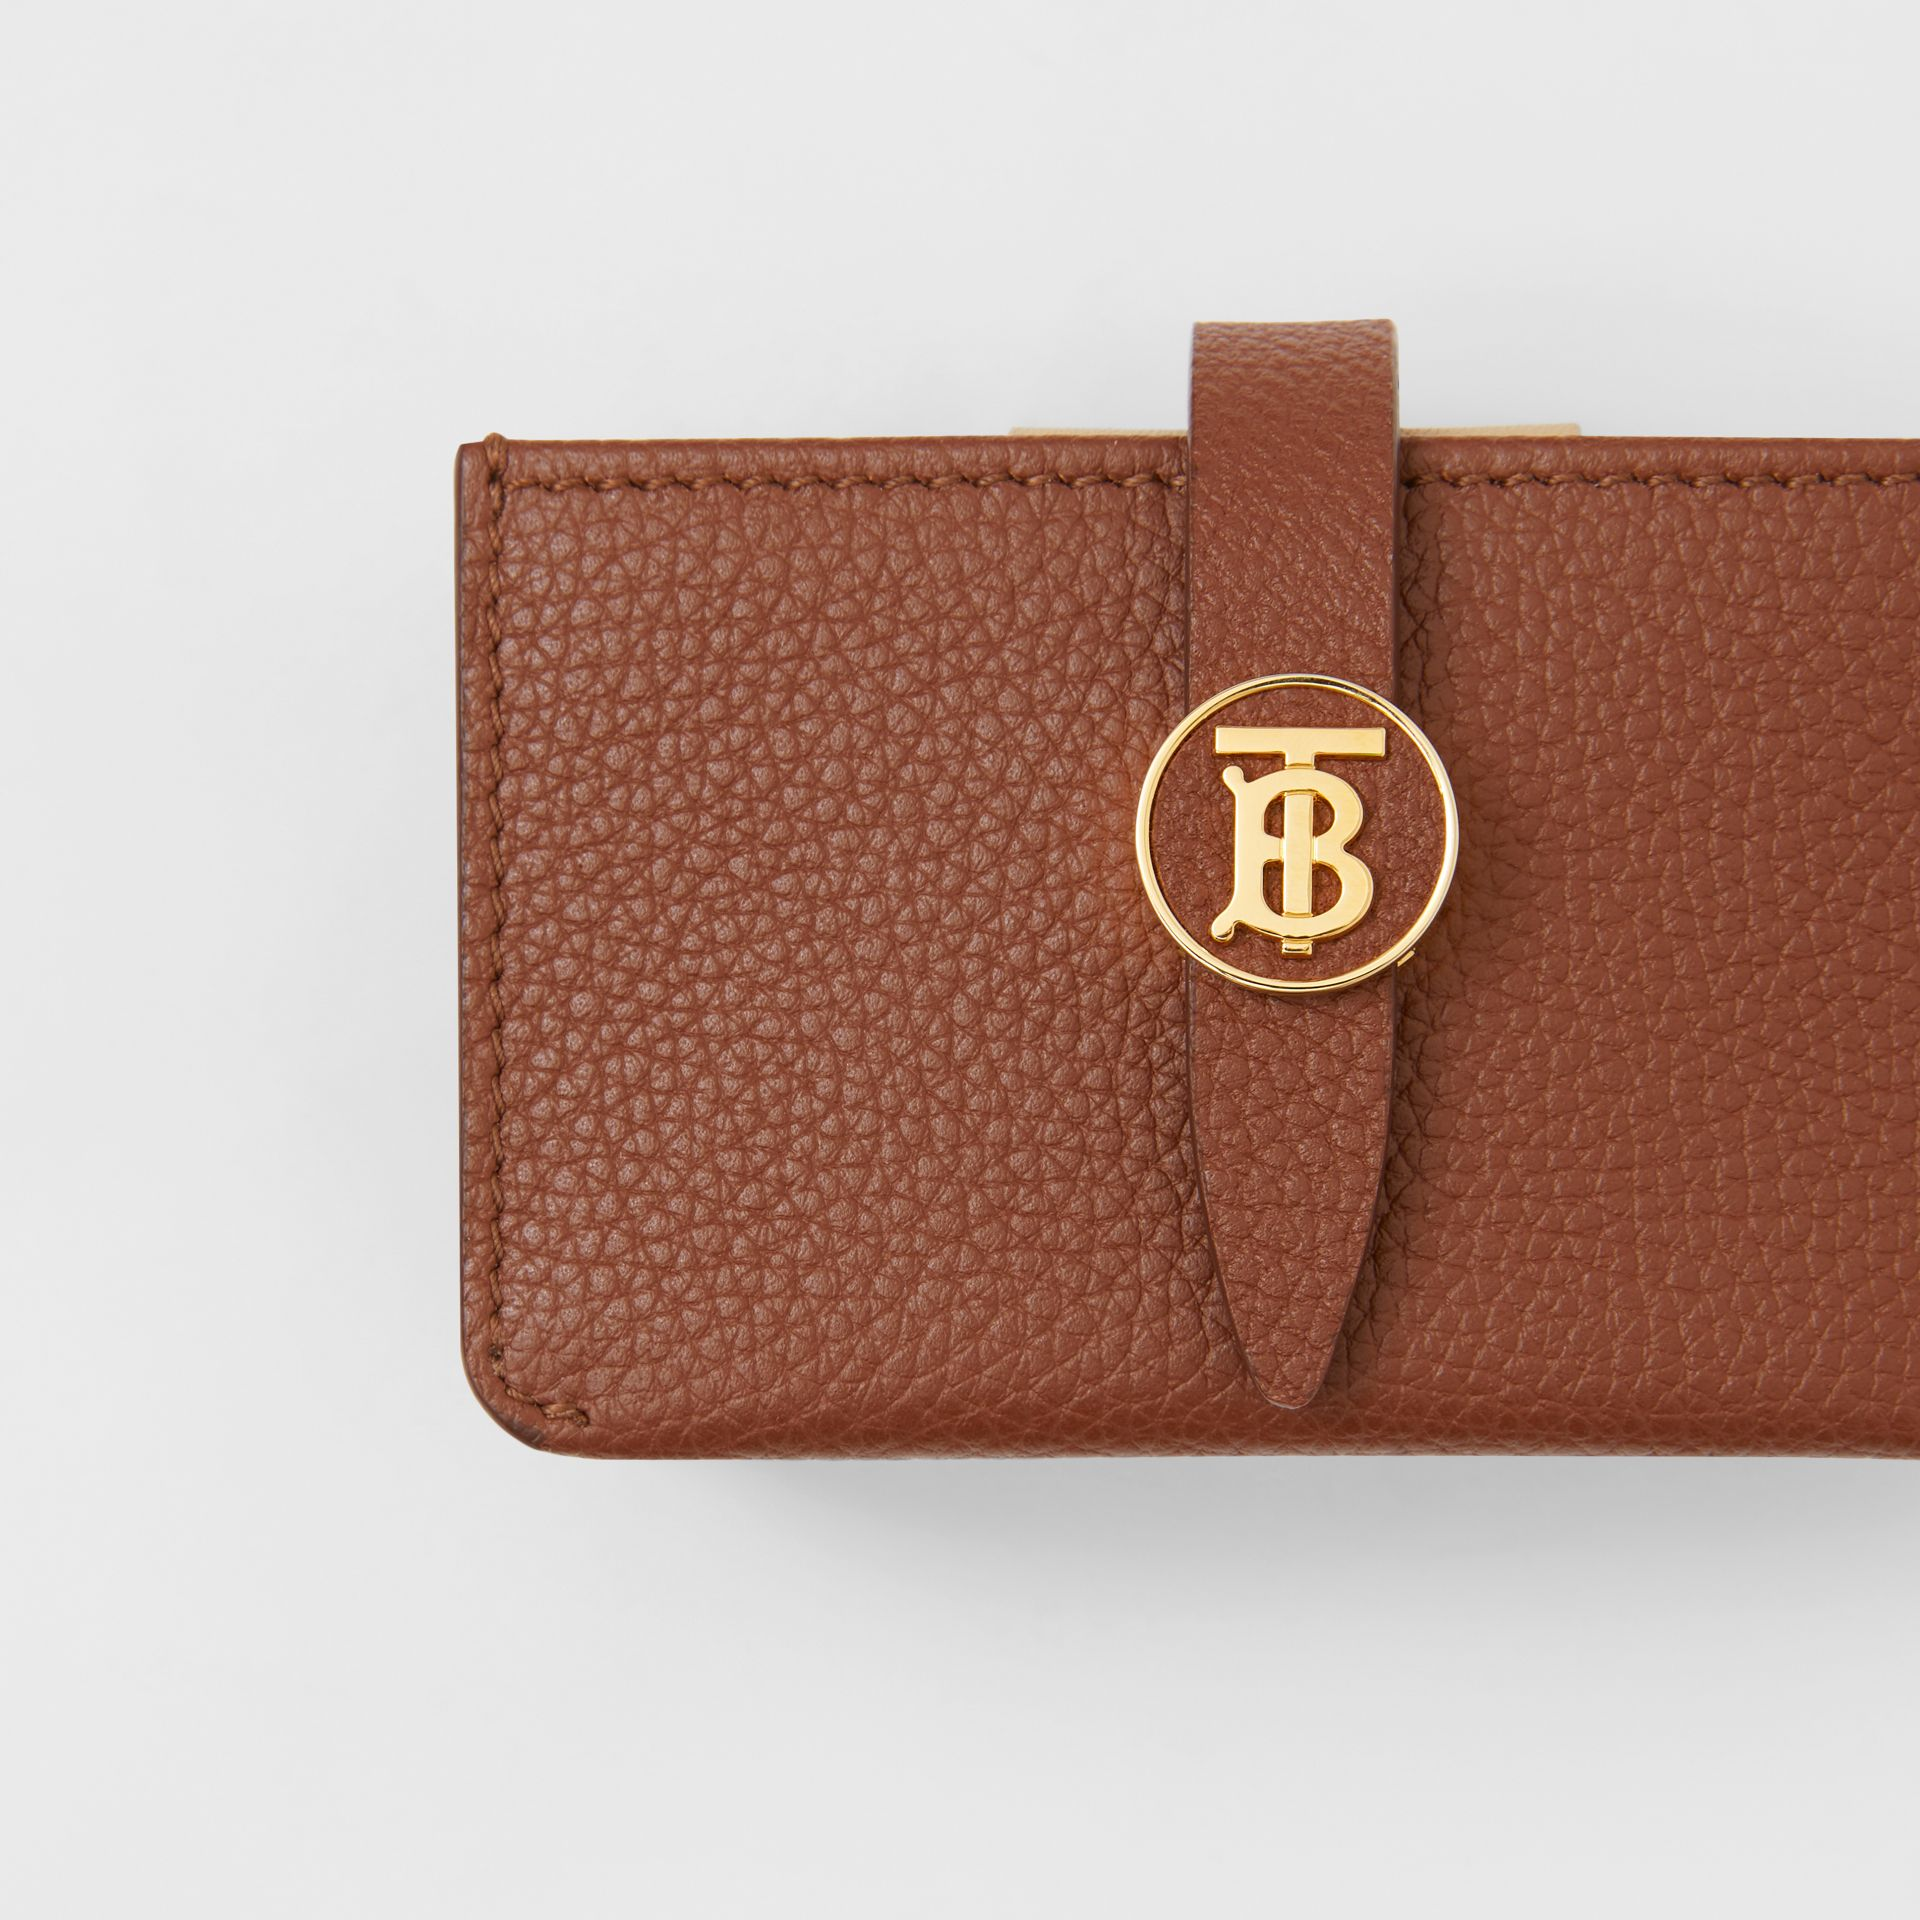 Monogram Motif Grainy Leather Card Case in Tan | Burberry - gallery image 1